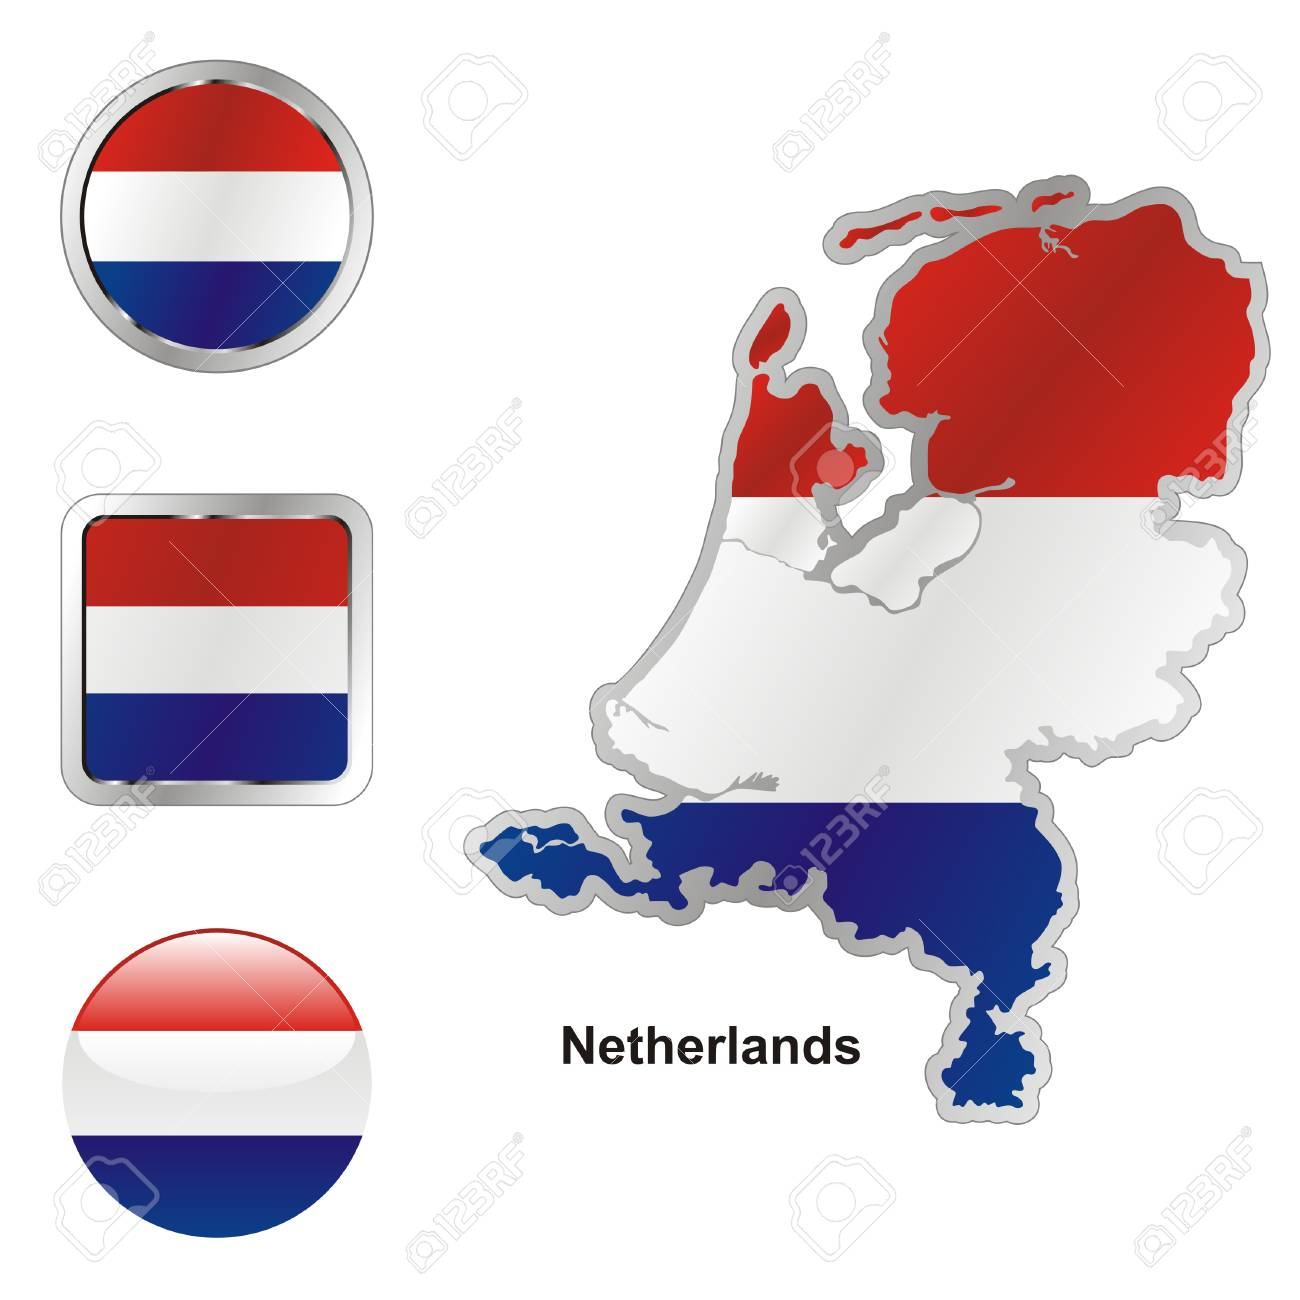 fully editable flag of netherlands in map and web buttons shapes Stock Vector - 6256062